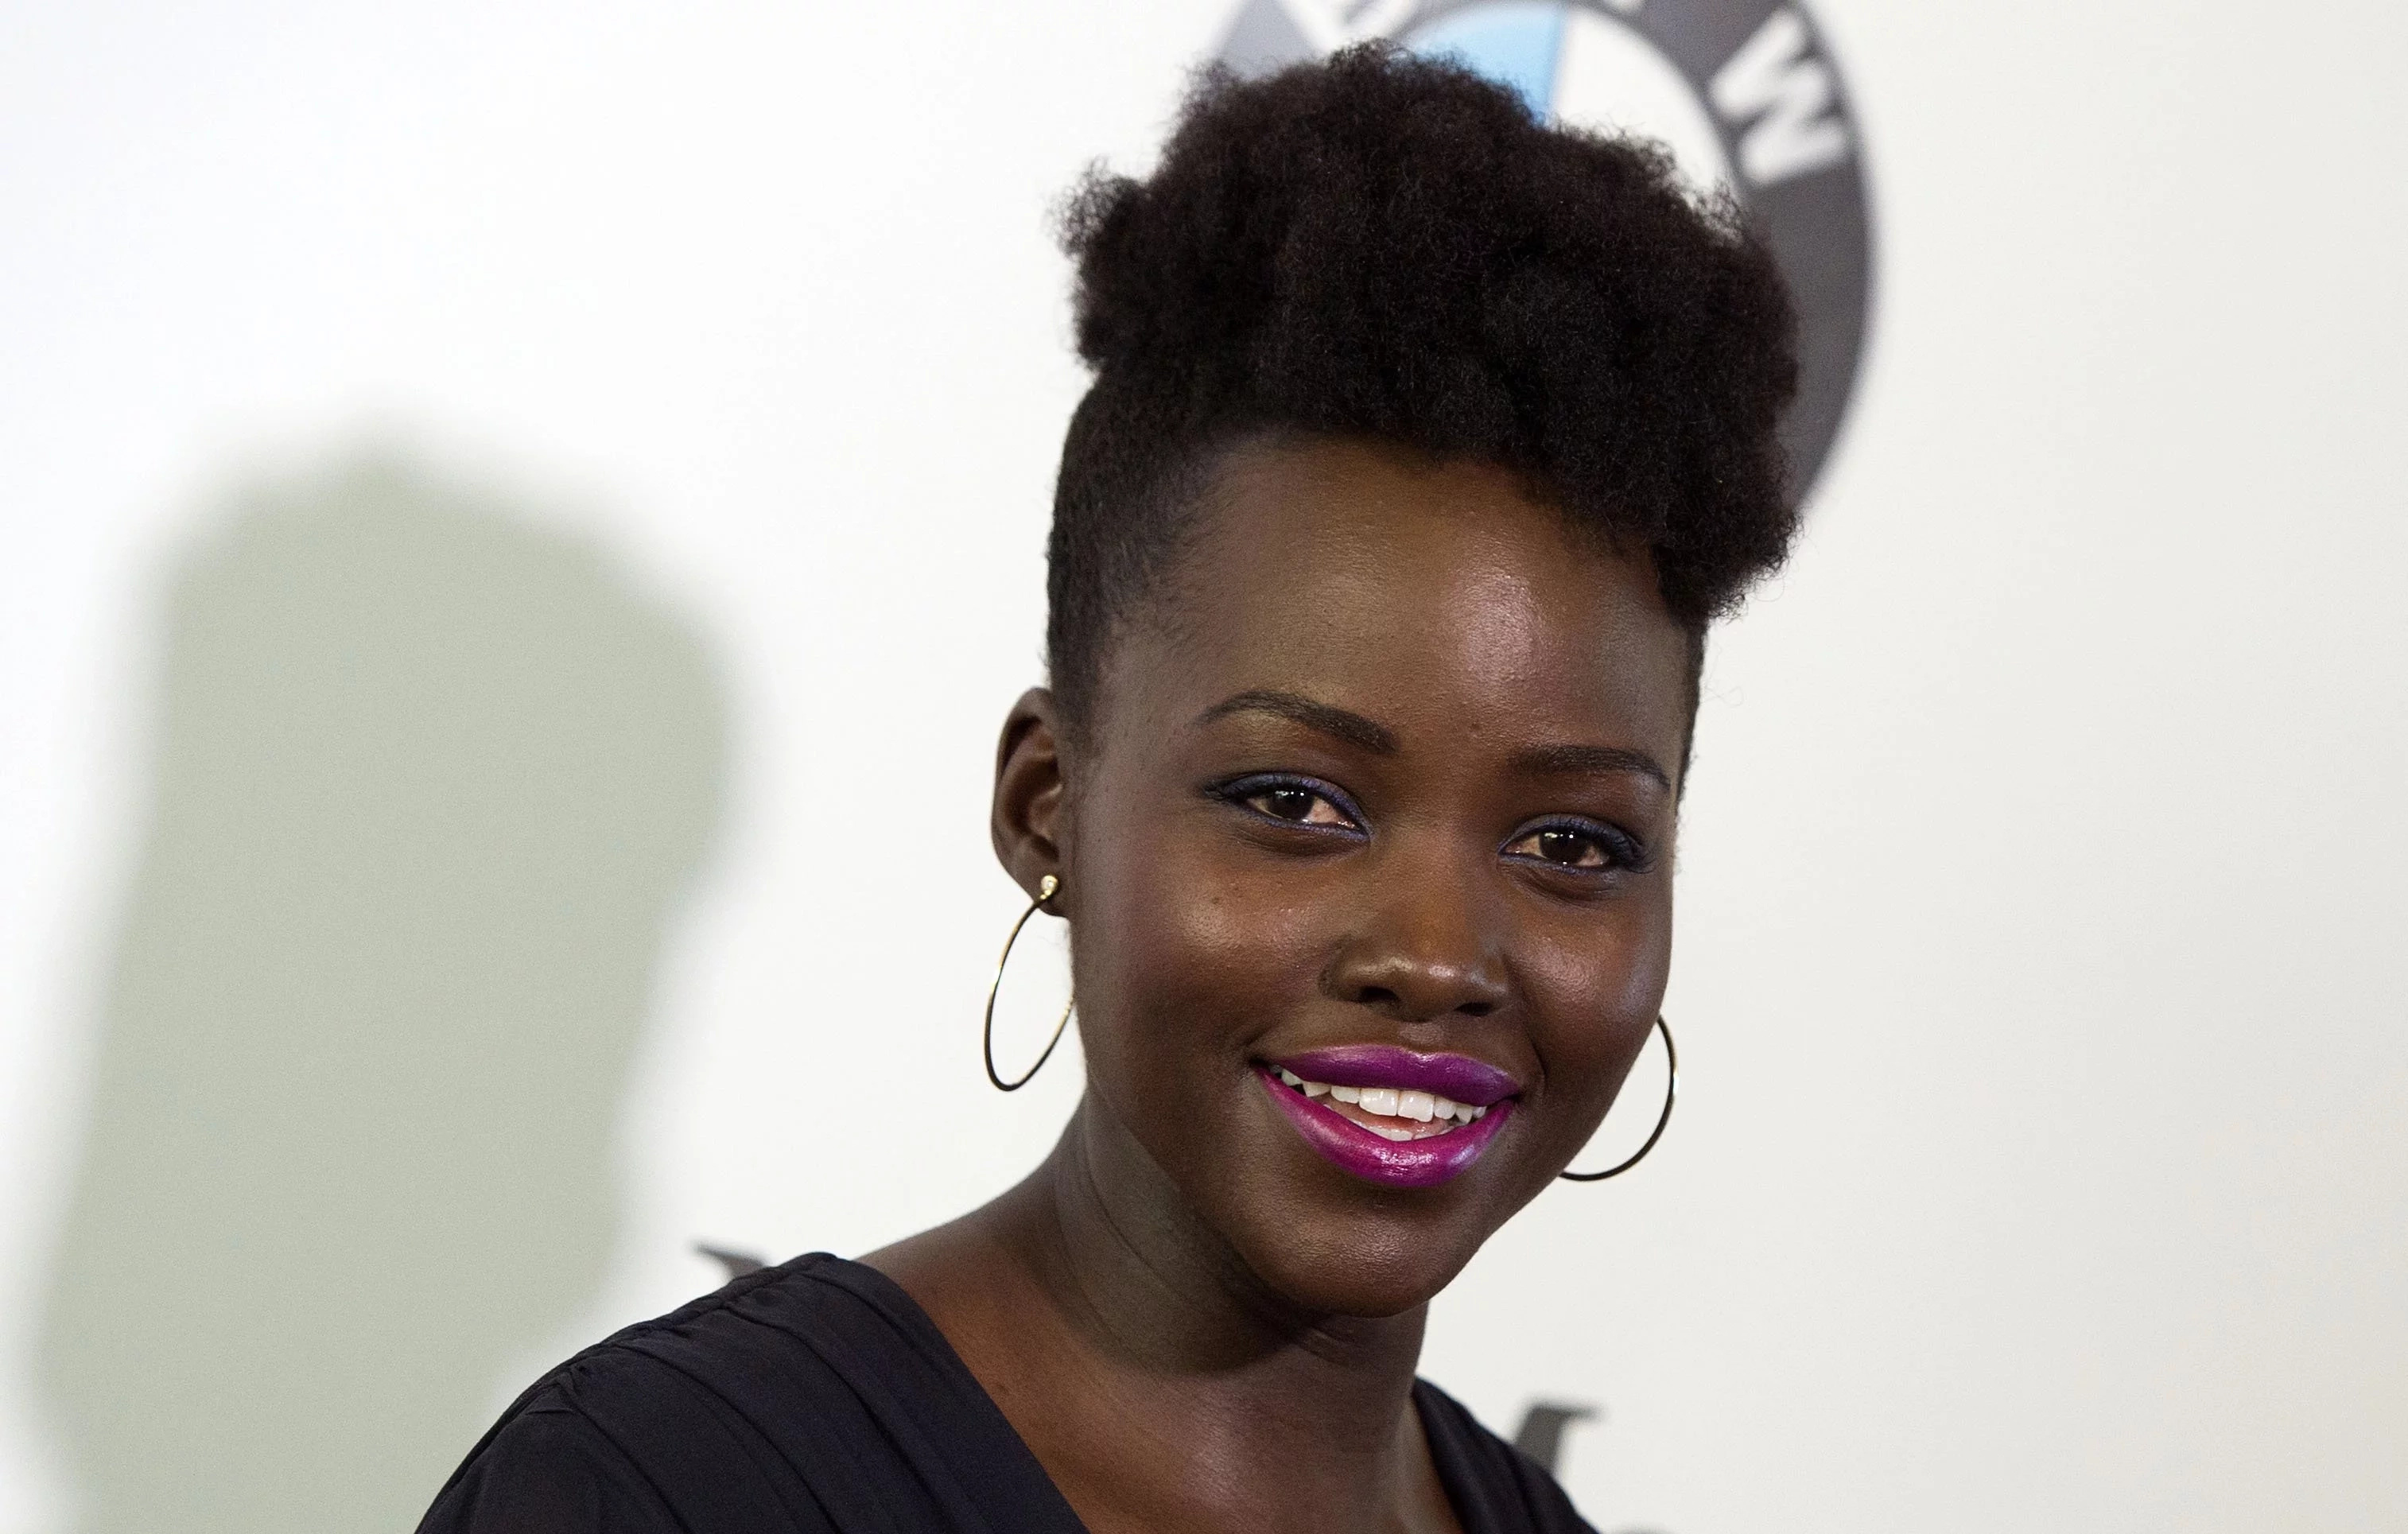 What Is Lupita Nyong O Net Worth After The Black Panther